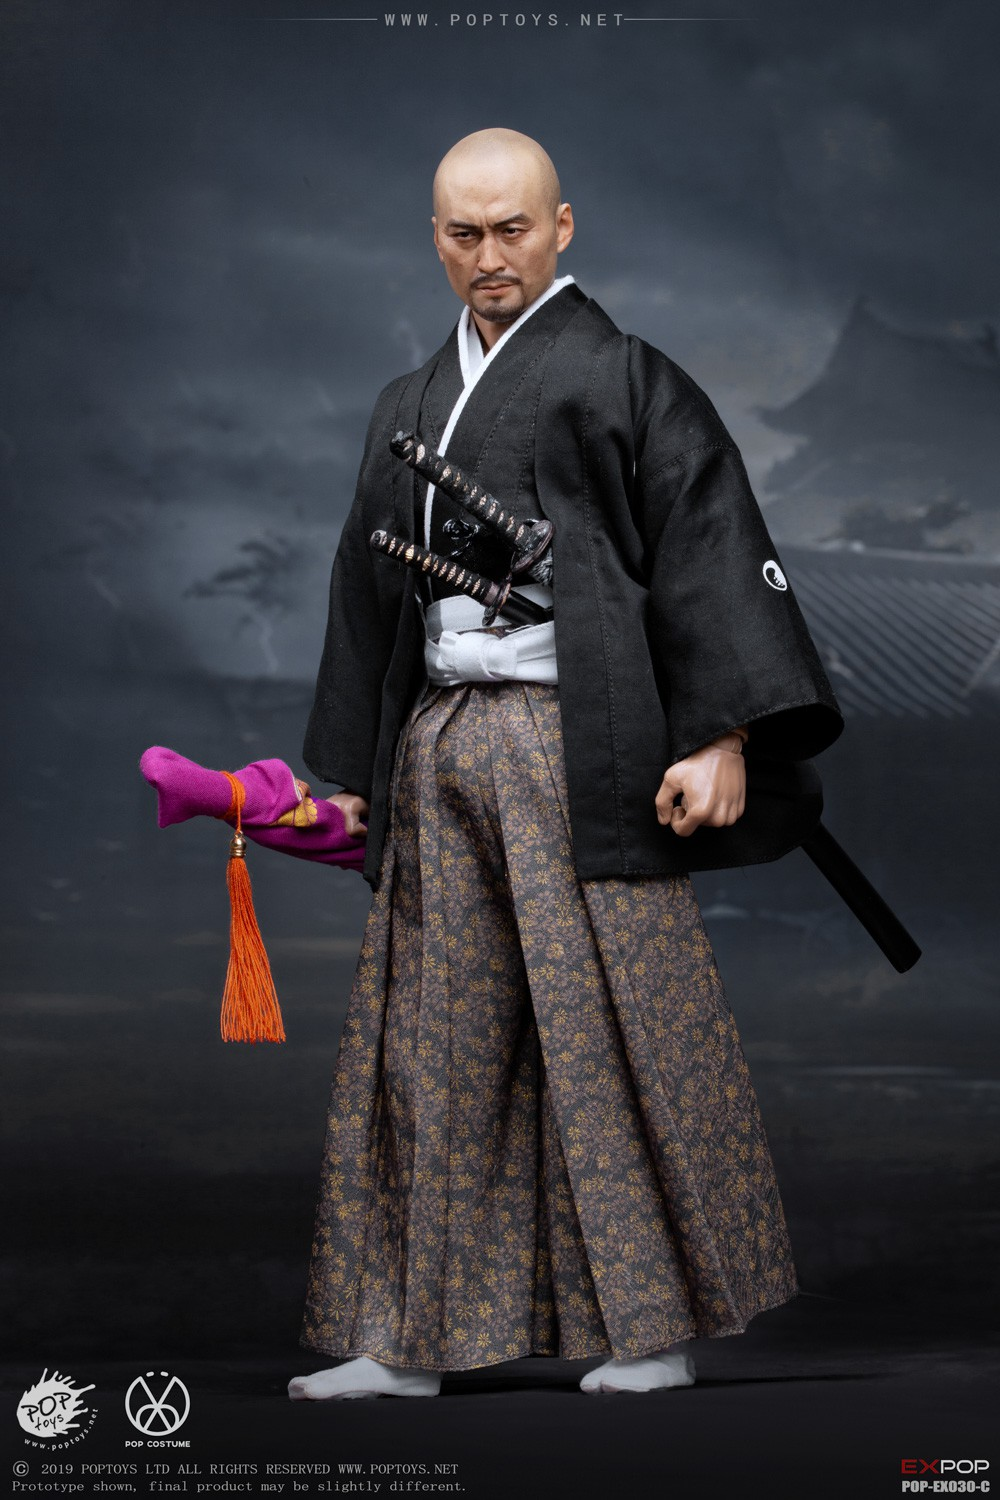 japanese - NEW PRODUCT: PopToys: 1/6 Benevolent Samurai EX30 Standard Edition/Deluxe Edition/Petition Edition [A piece of material 100% alloy] 16335210